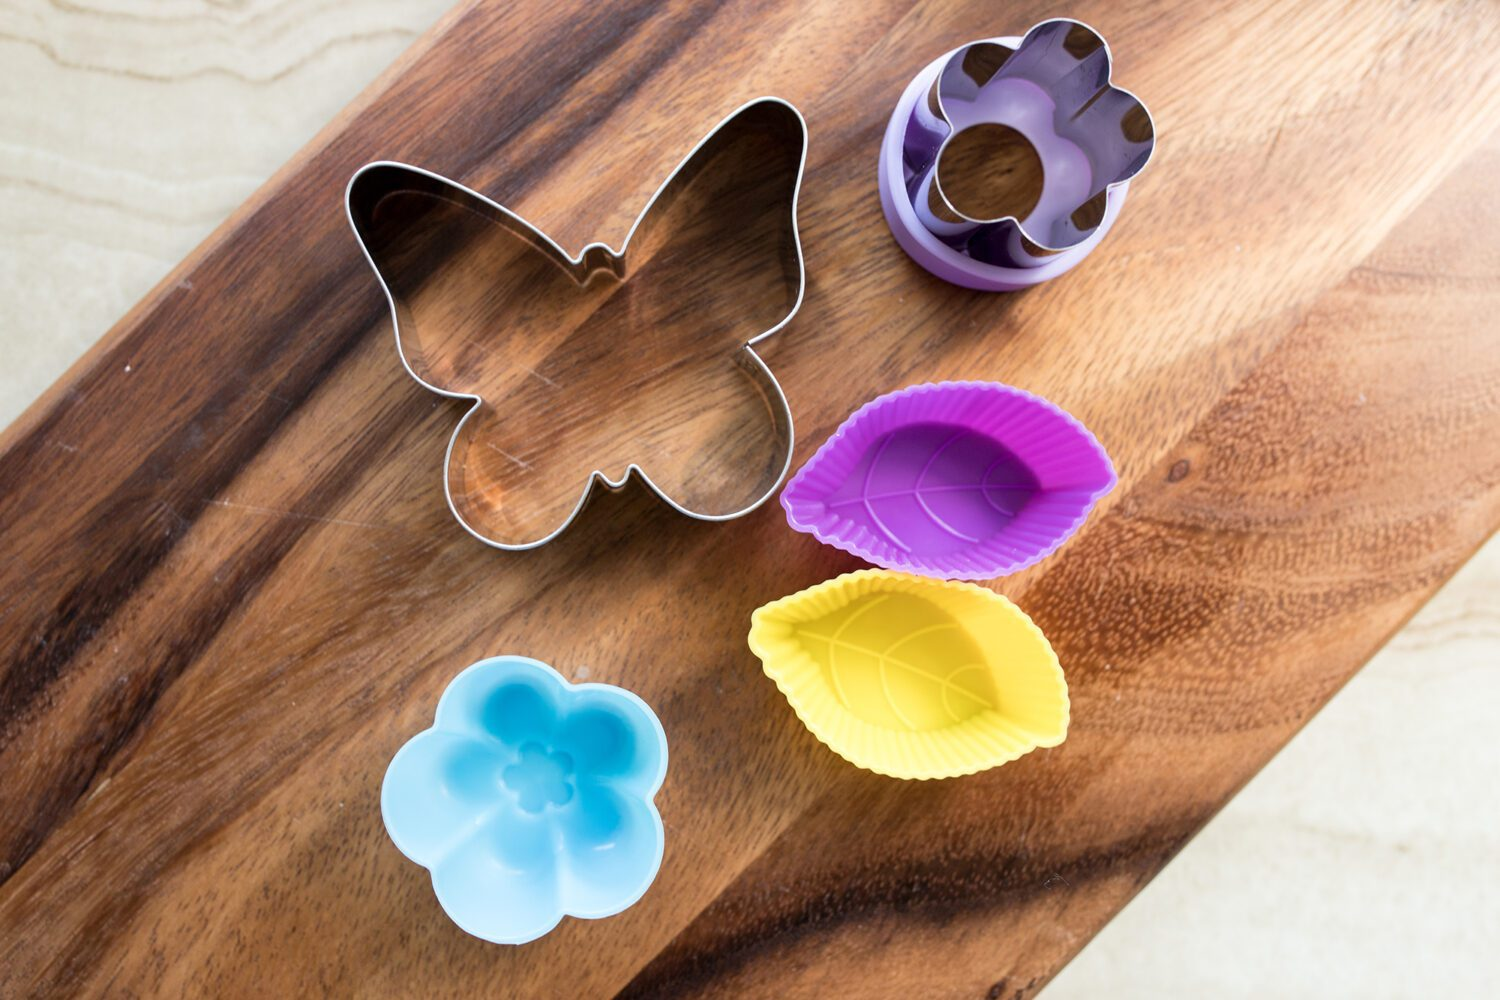 variety of cookie cutters and silicone molds